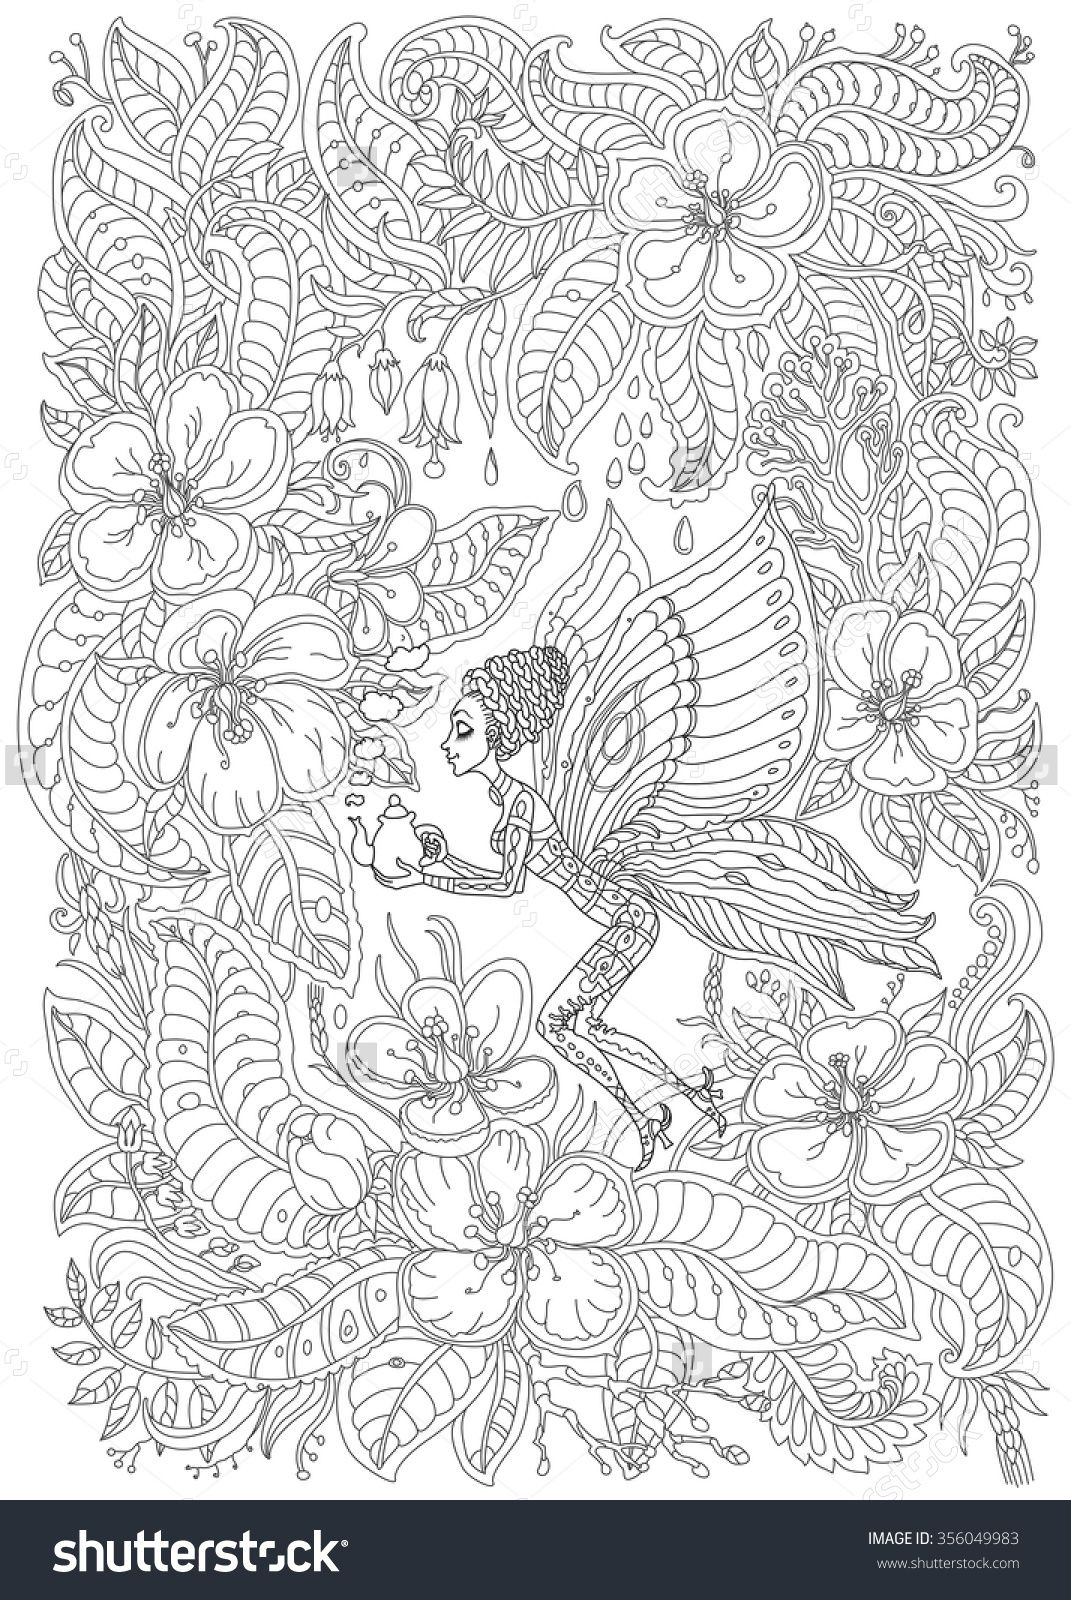 Pin On Zentangles Adult Colouring Coloring Pages [ 1600 x 1071 Pixel ]